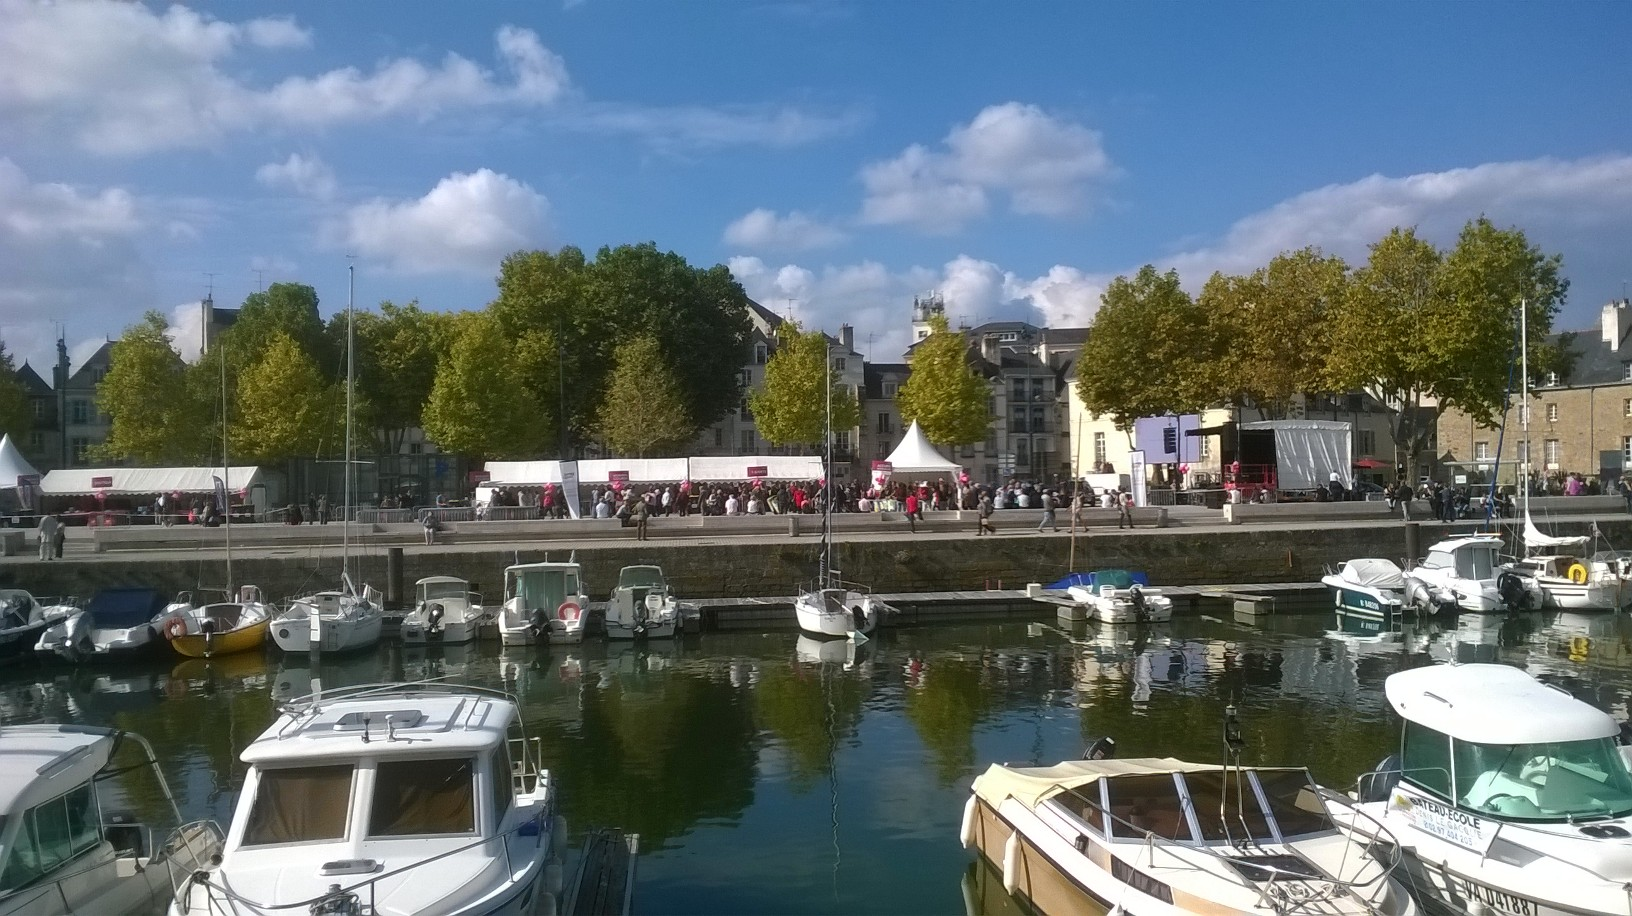 vannes canal le port from parking to event oct16